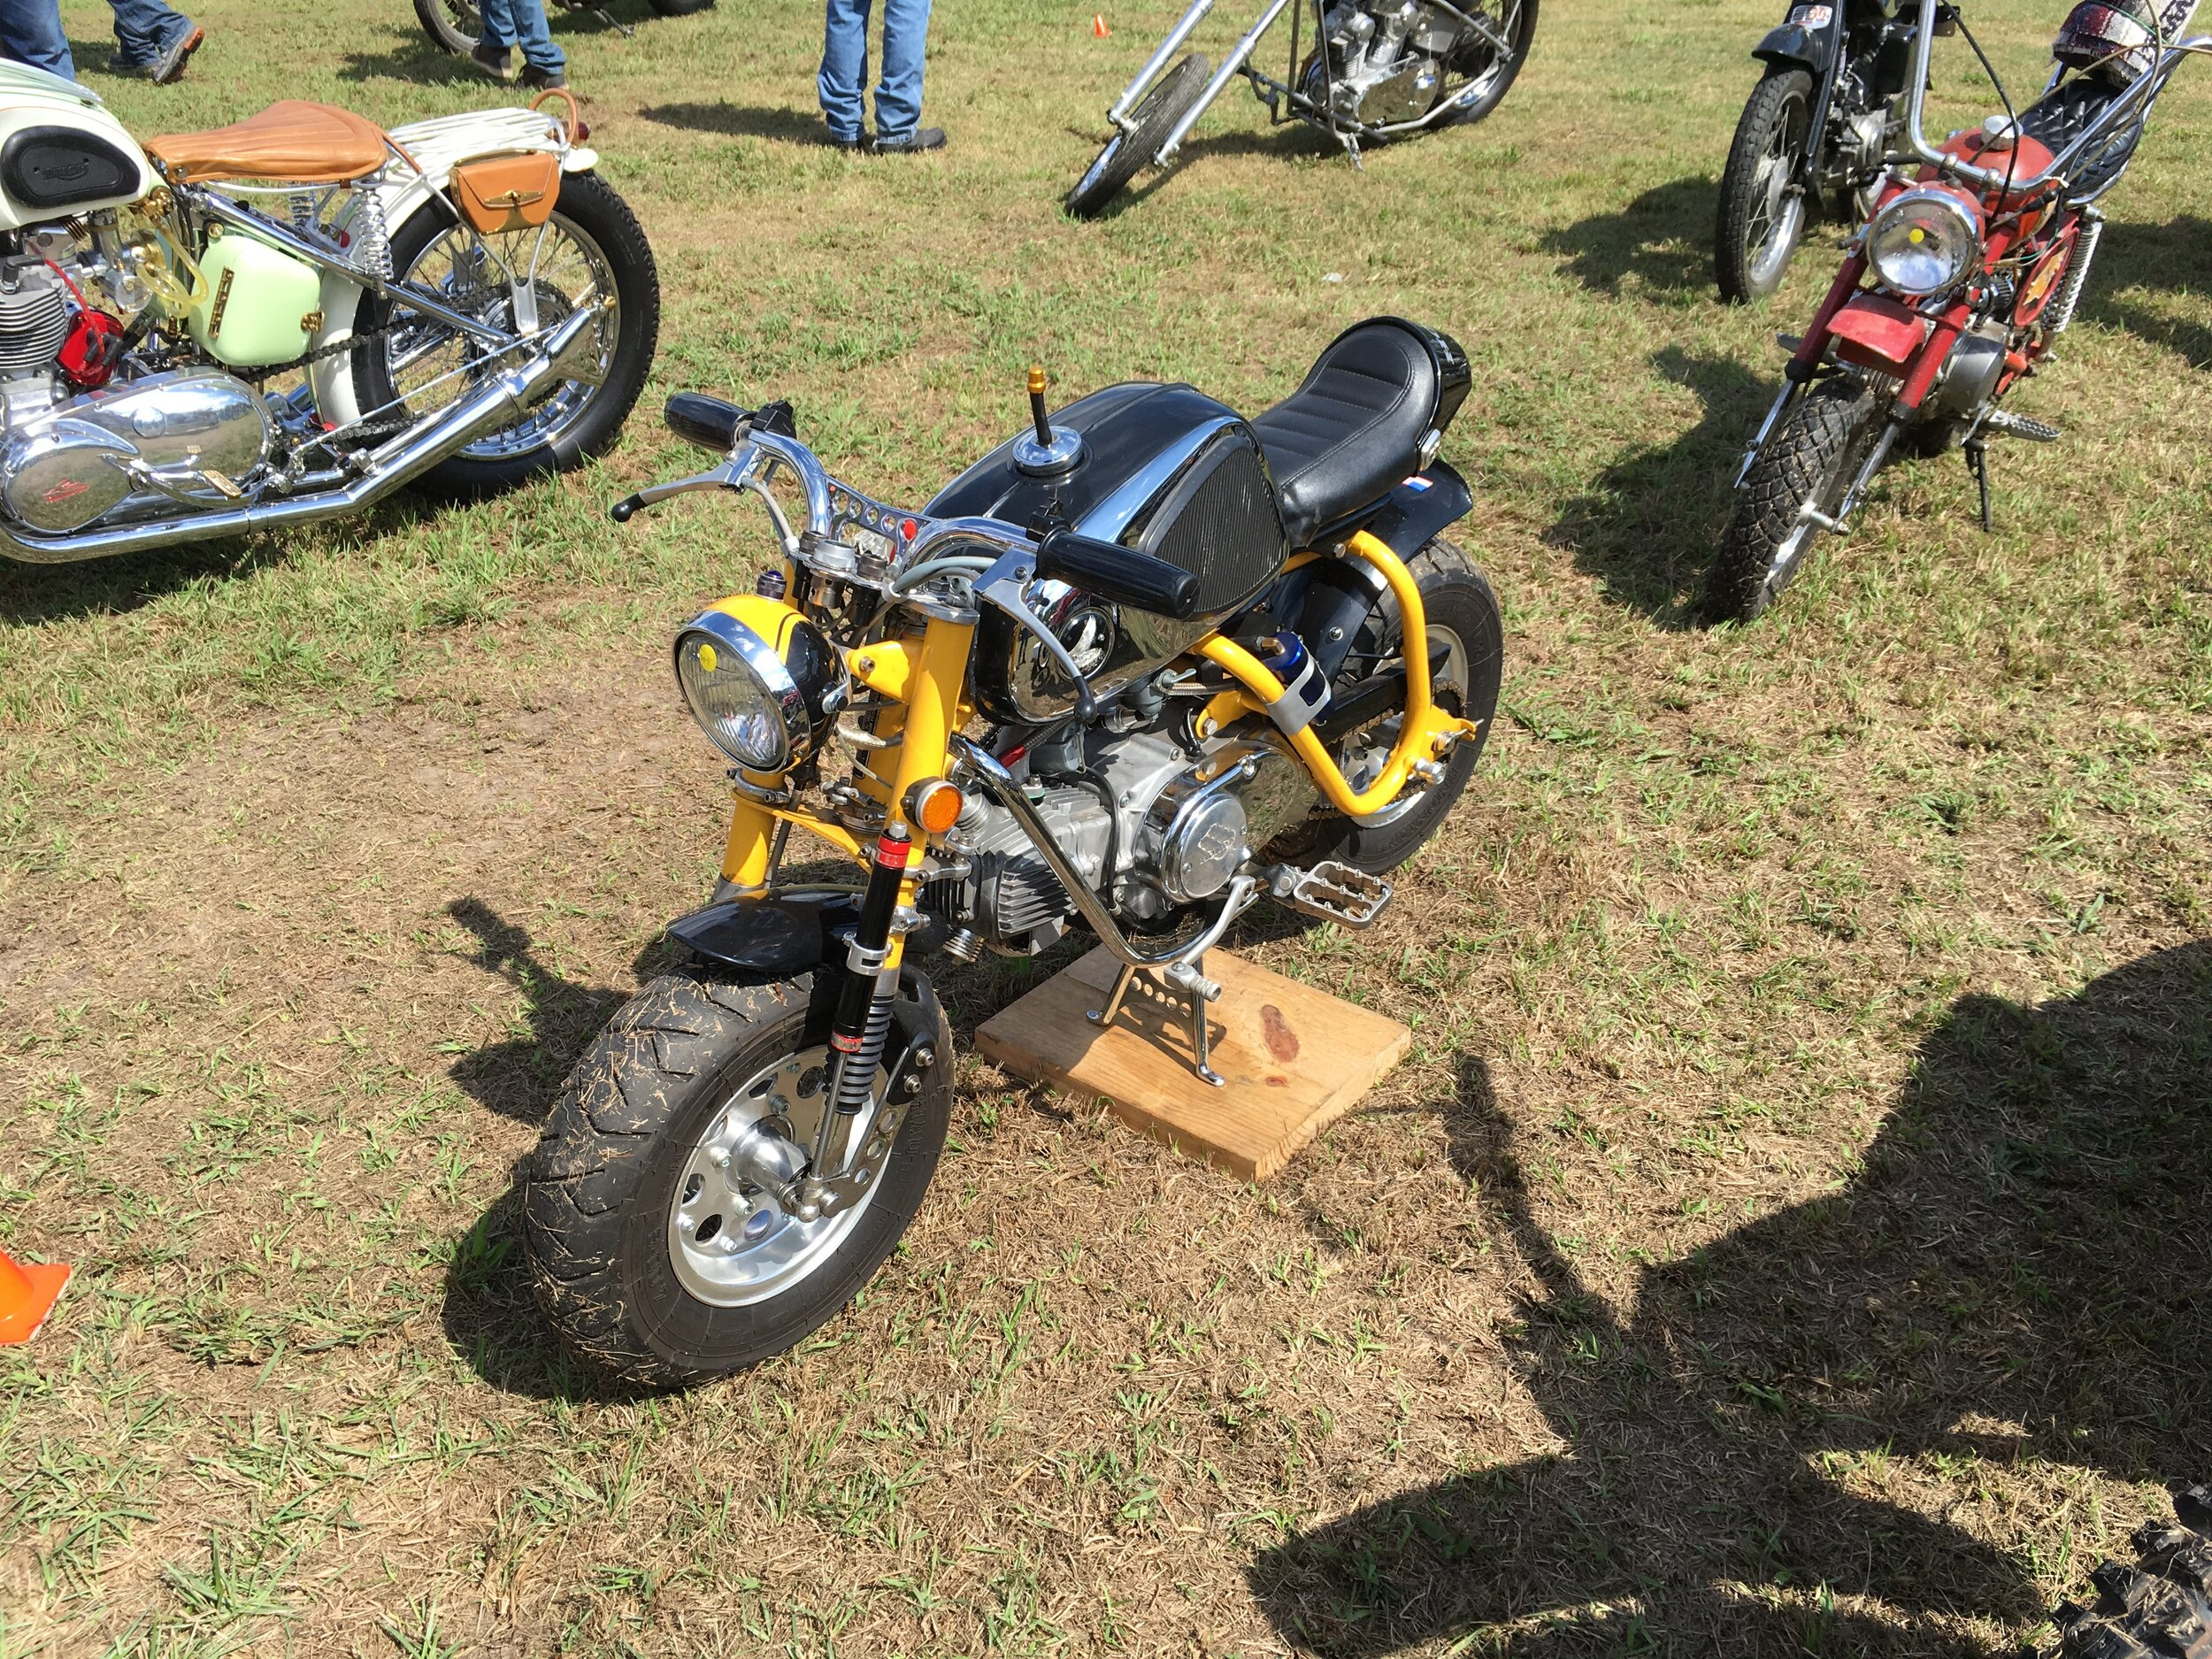 and first place went to the 1971 Super 50 Cafe. This bike had not been run in a while and was brought back to good running shape.